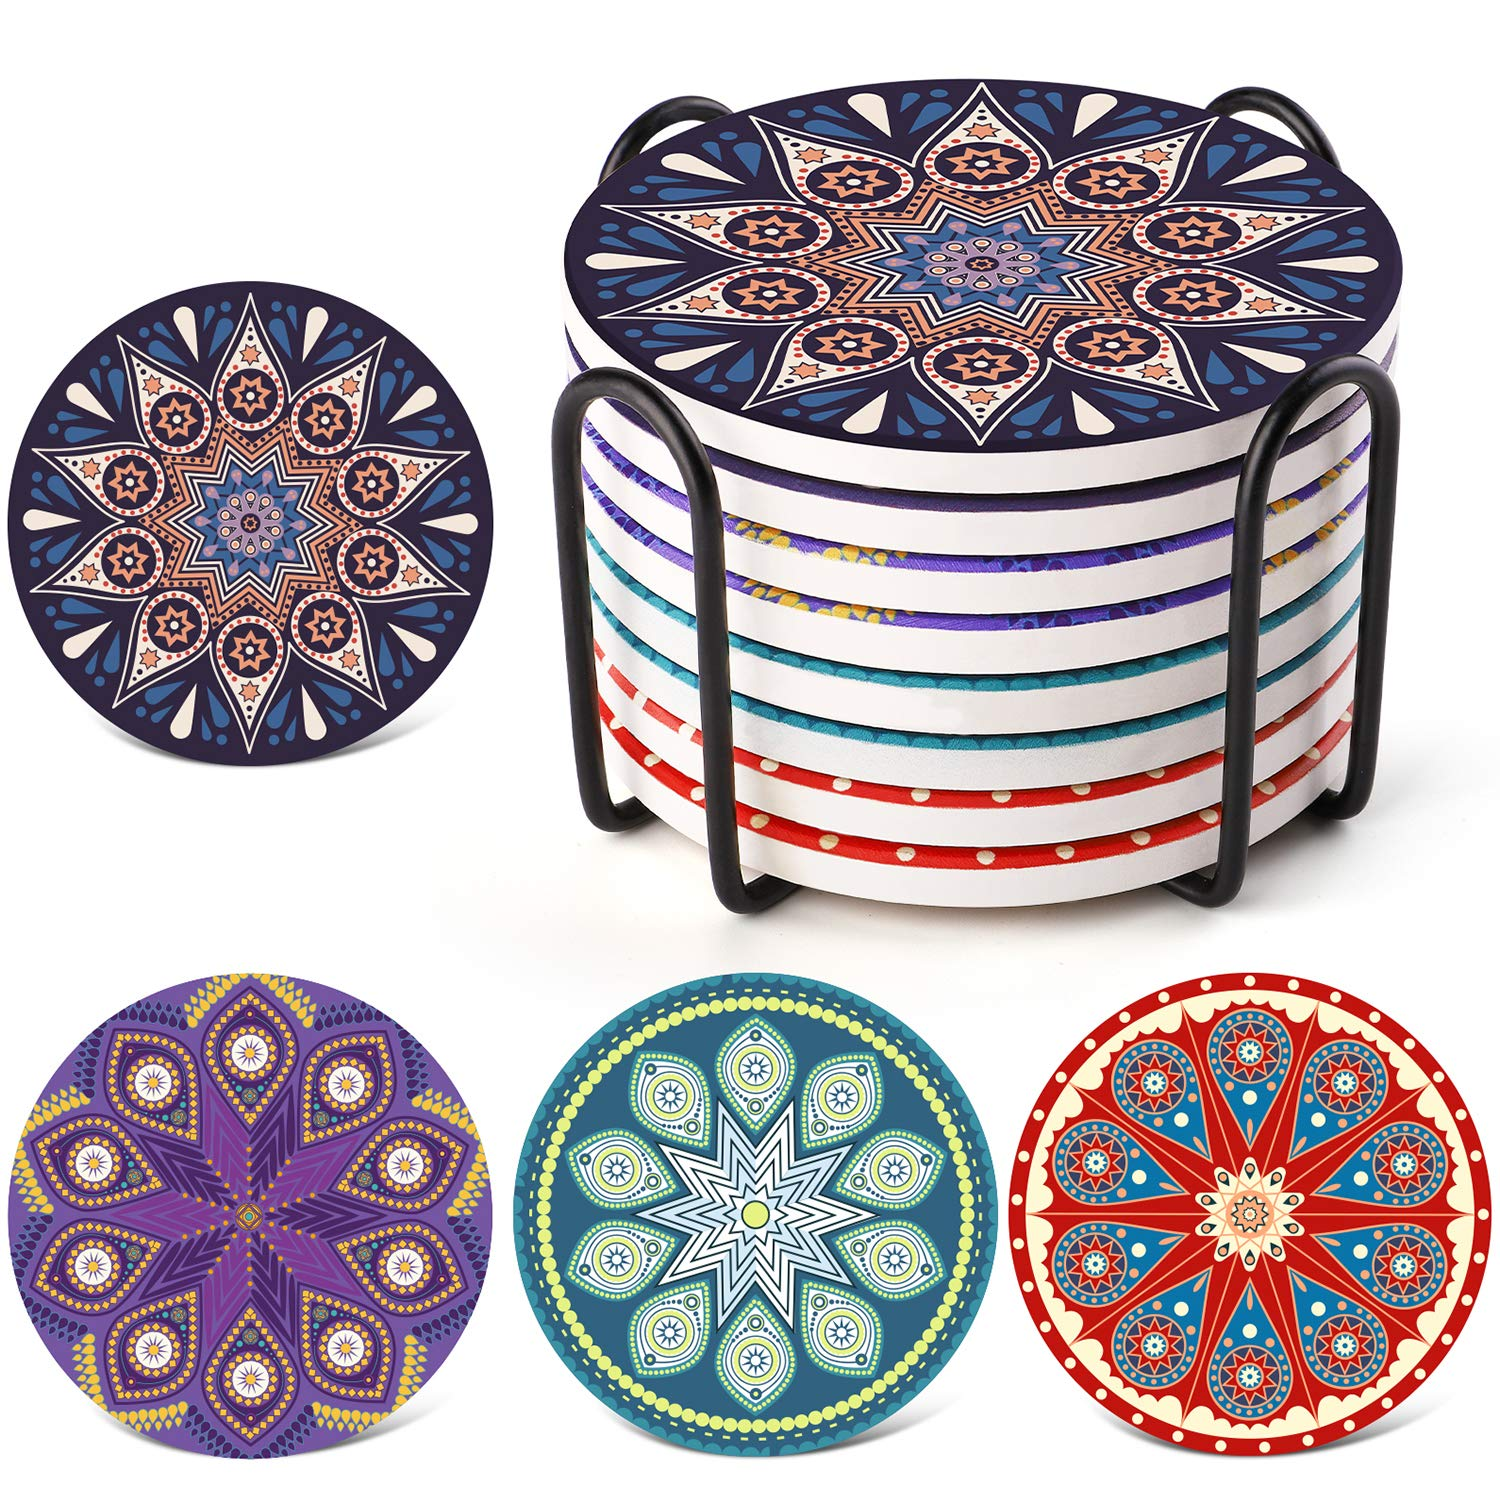 LIFVER Absorbent Drink Coasters with Holder, Set of 8 Mandala Style Ceramic Stone Coasters with Cork Base, 4 Inches Coaster Sets, Multicolors by LIFVER